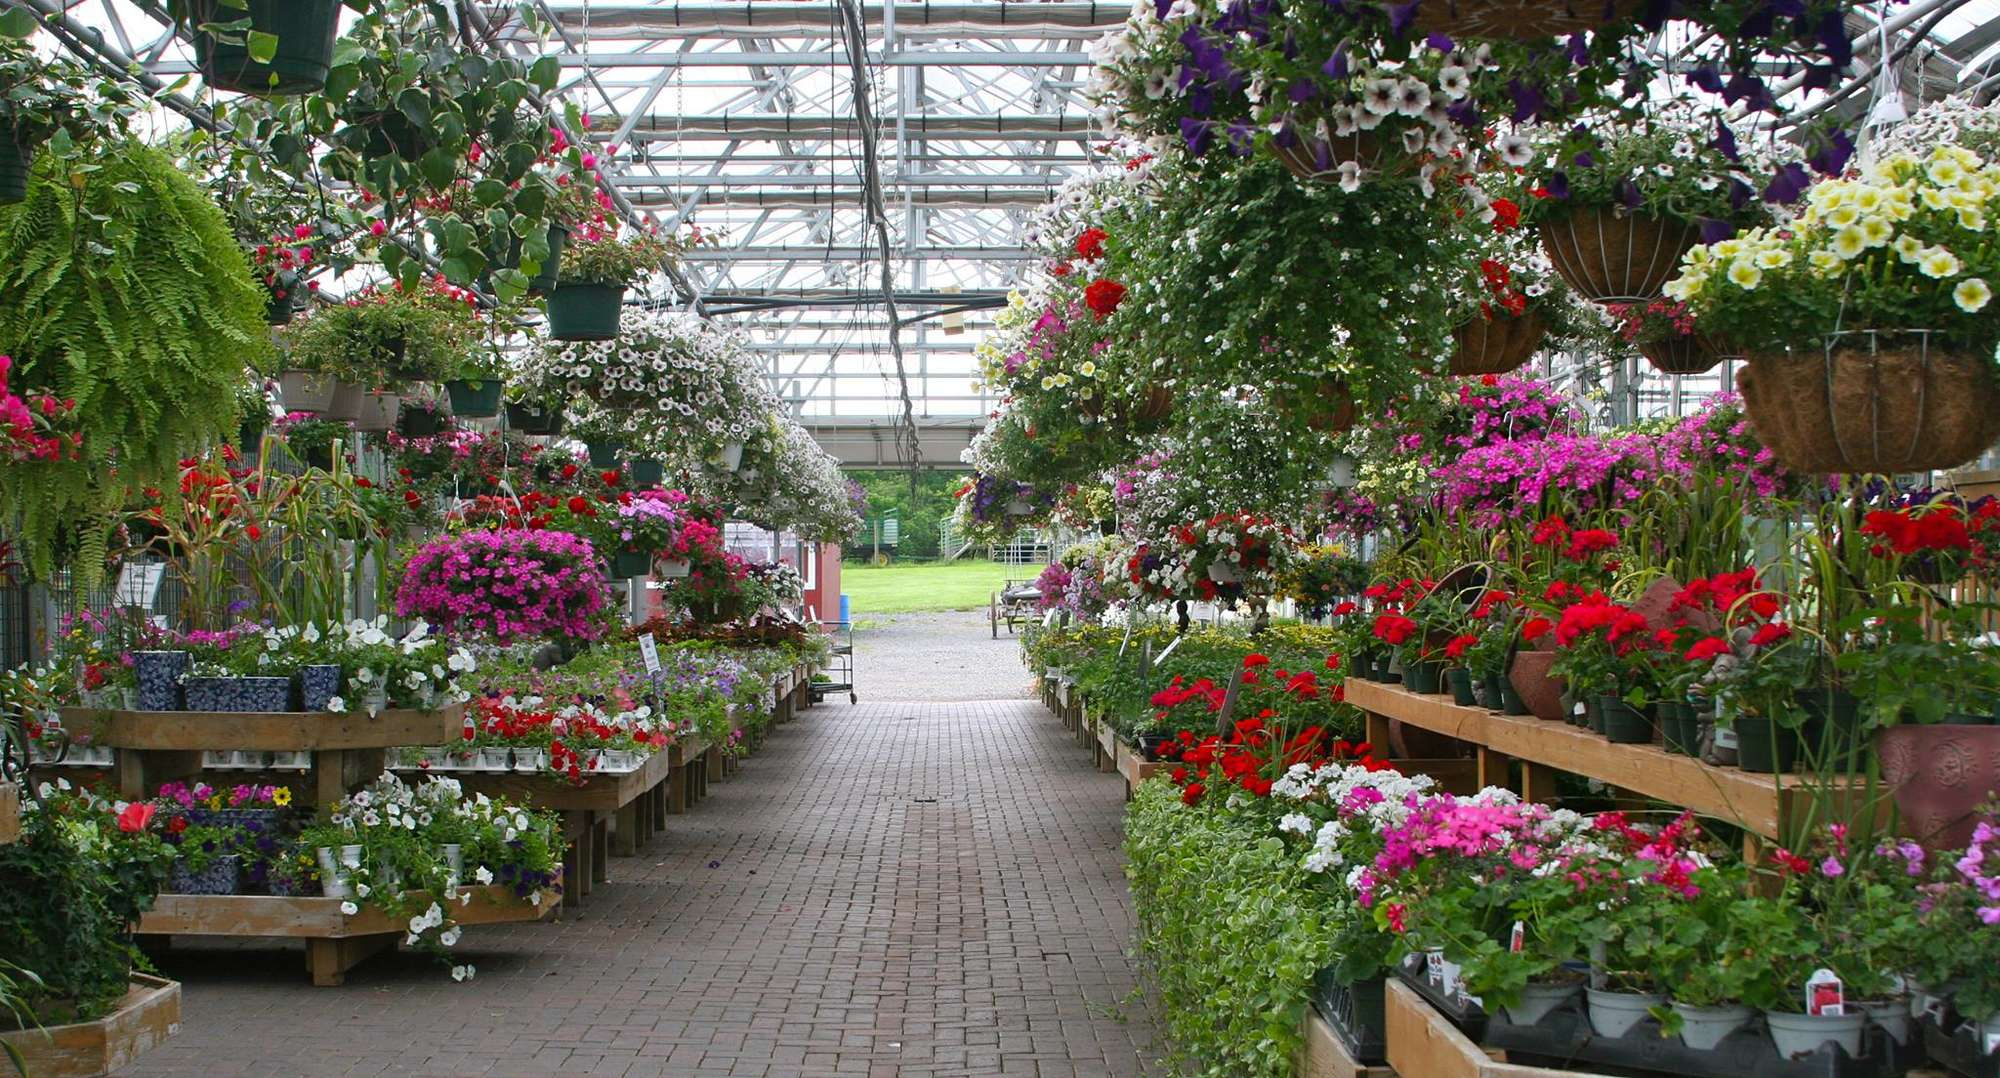 Heaven hill farm and garden center 451 state route 94 vernon new jersey 07462 get for Hills farm and garden